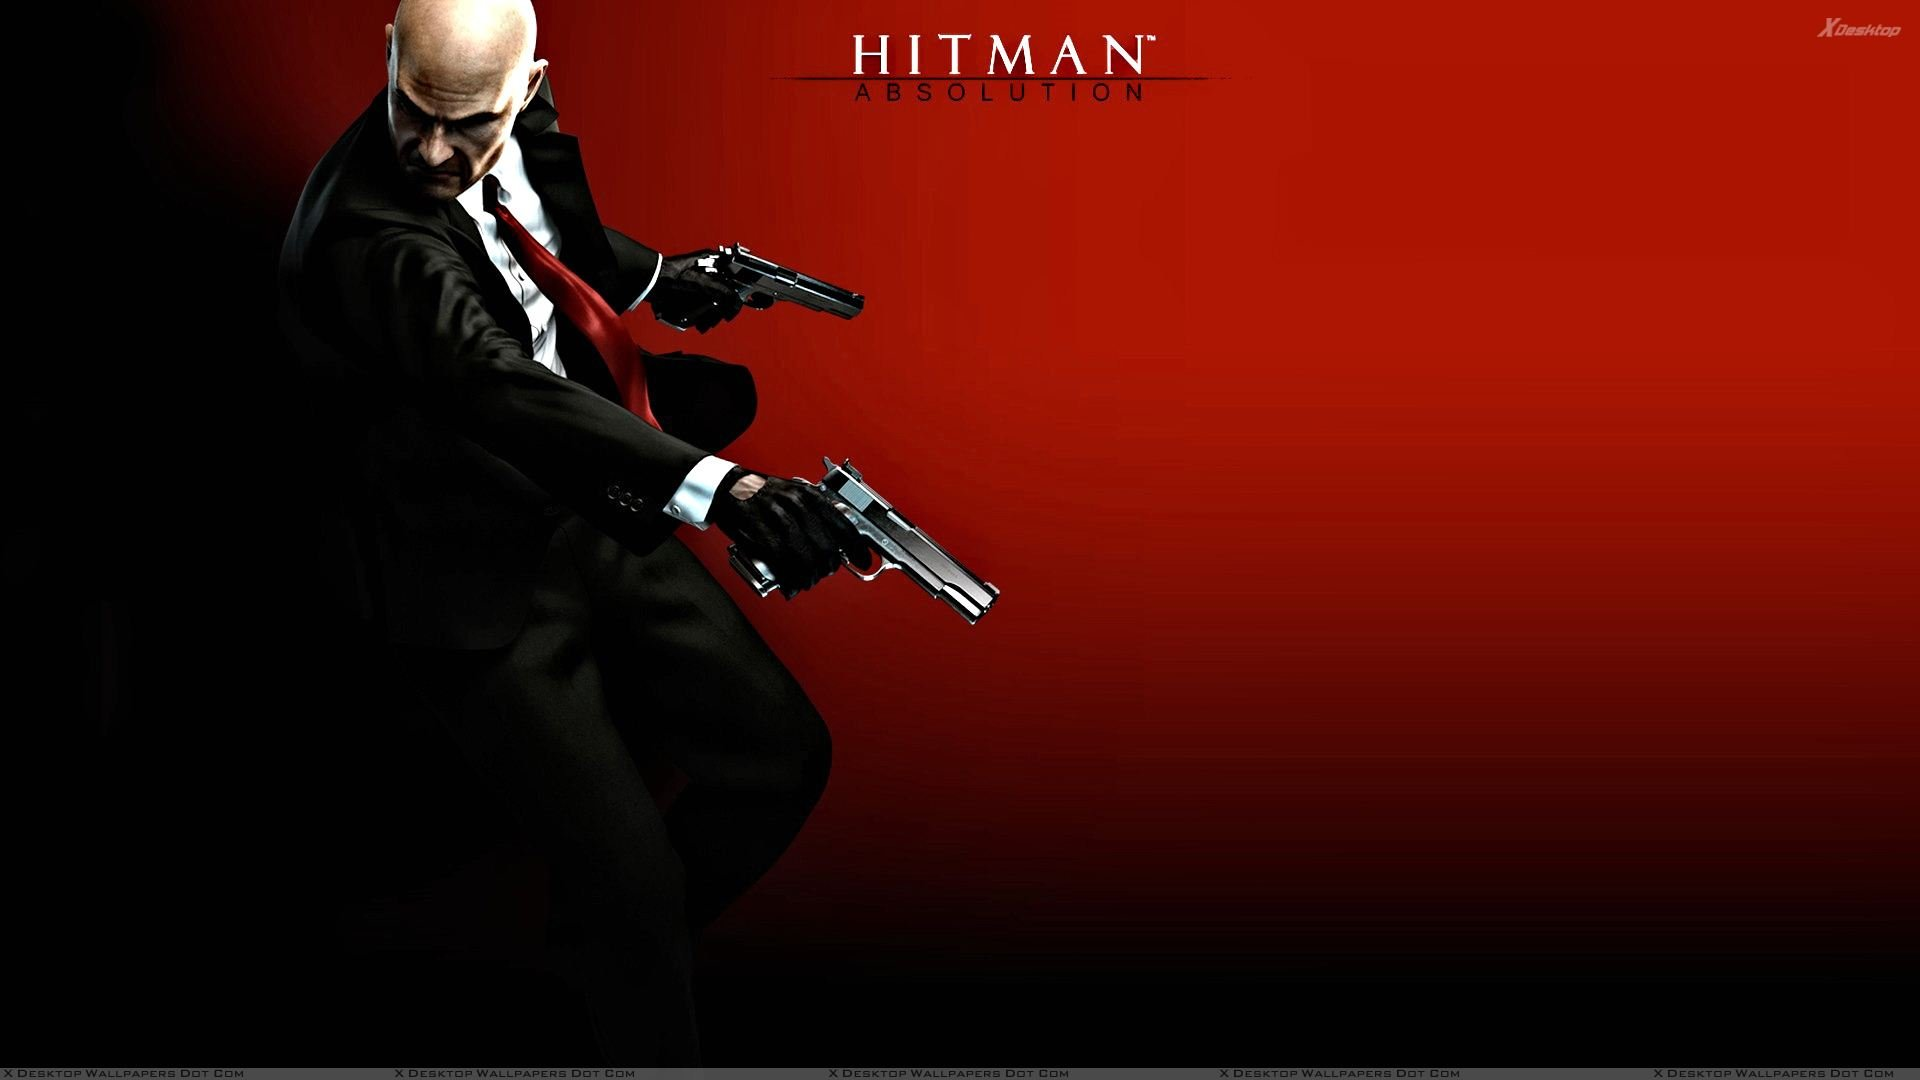 Free Download Hitman Absolution Wallpapers Photos Images In Hd